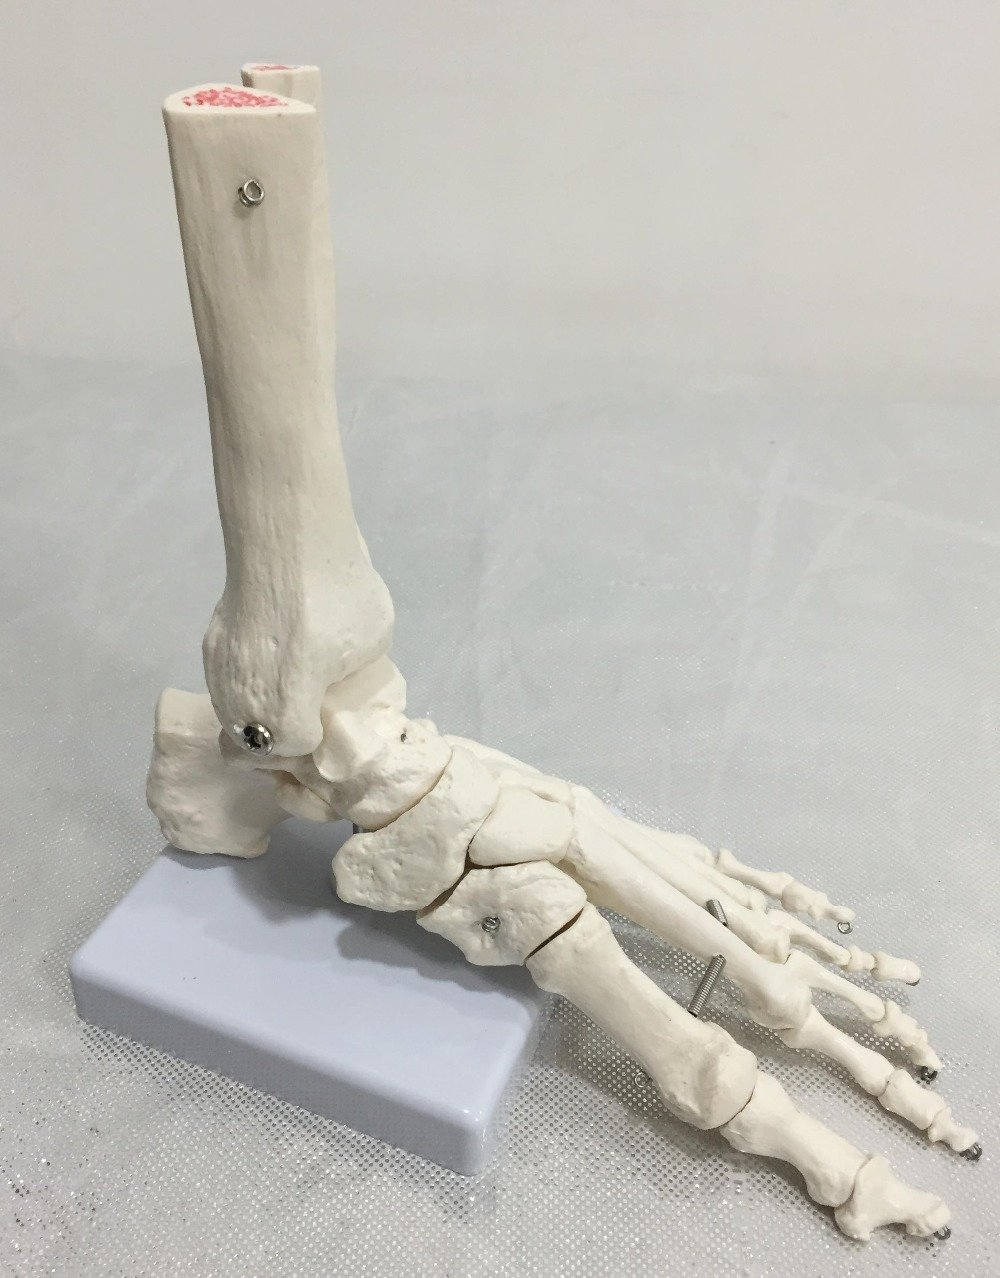 Human Foot Bone Model, Foot Sole, Foints of Foot Ankle, Tibia and Fibula, Foot Model Department of Orthopedics Rancoo